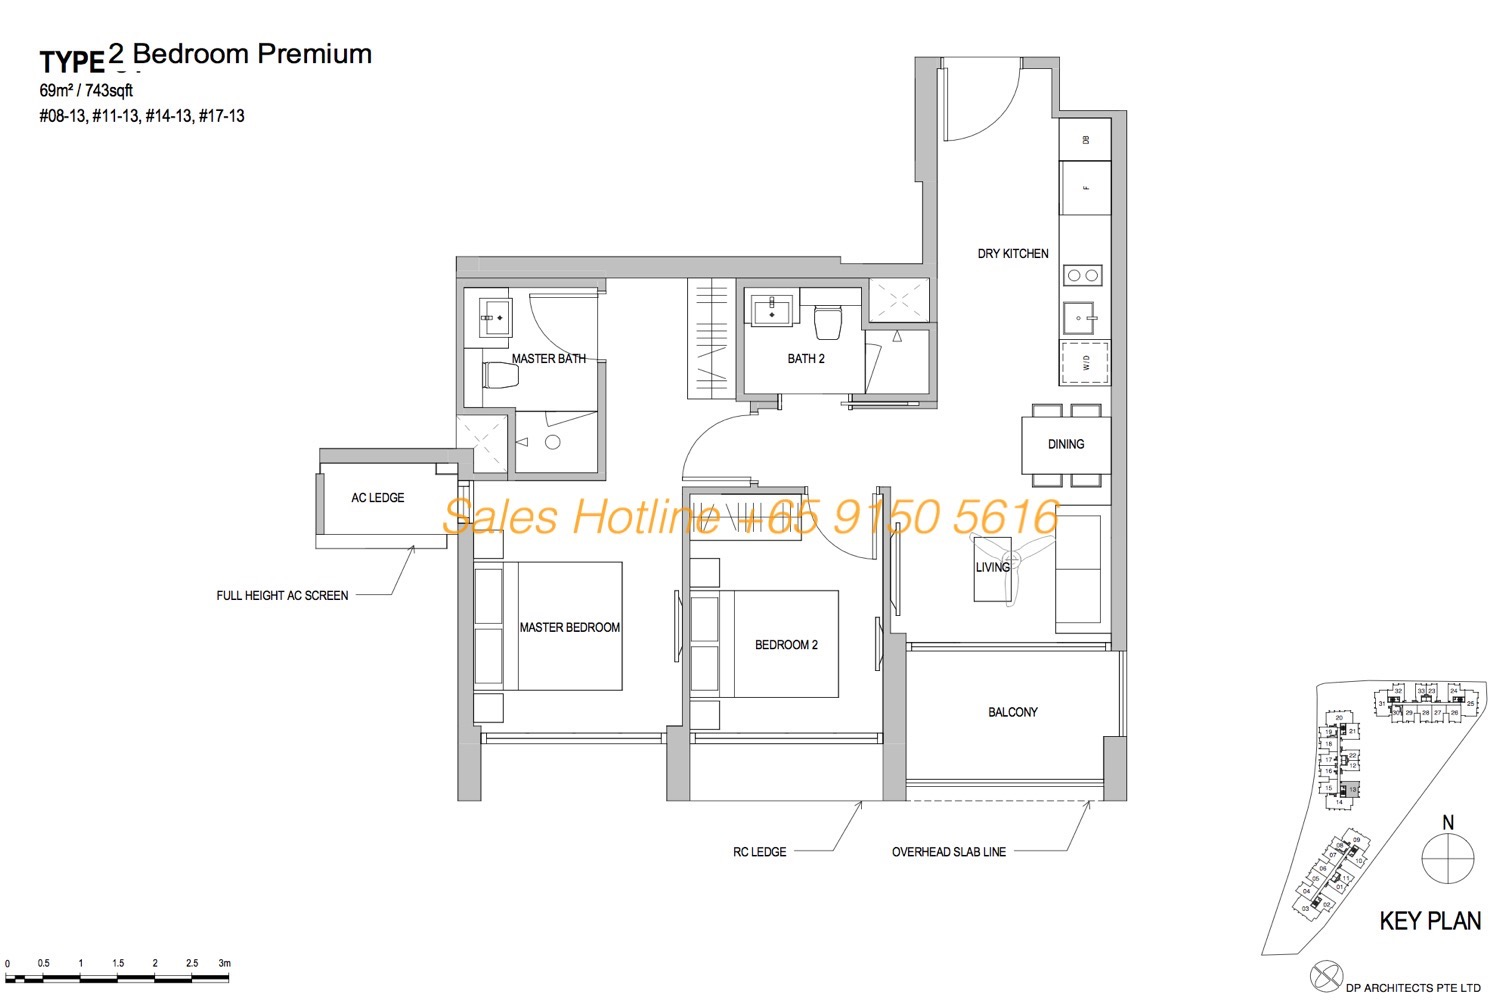 Park Place Residences Floor Plan - 2 Bedroom Premium